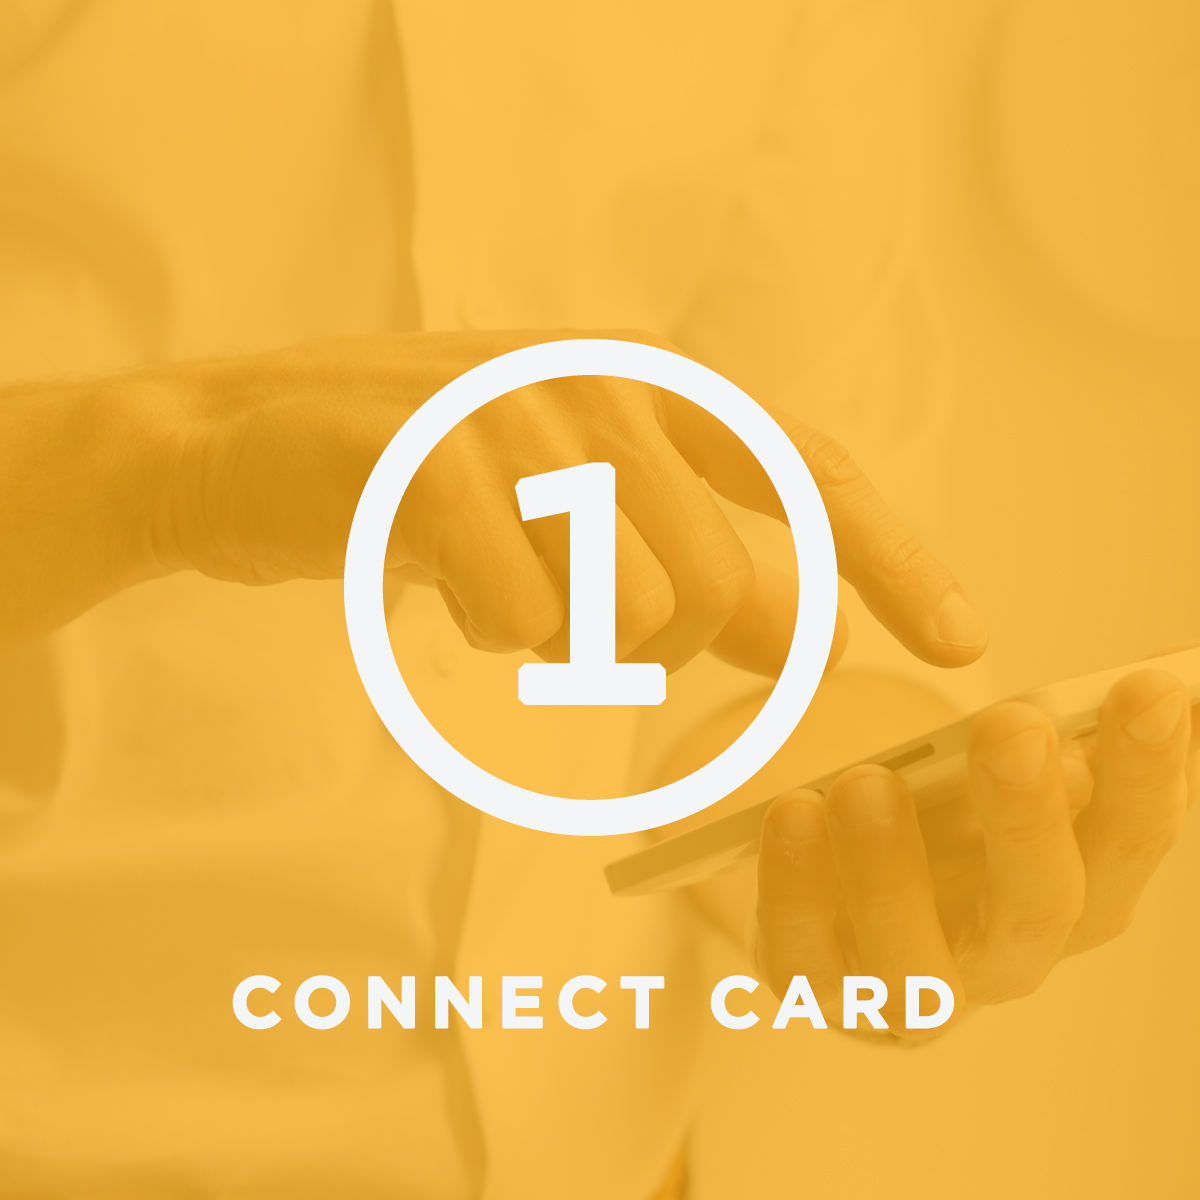 Step 1 Connect Card